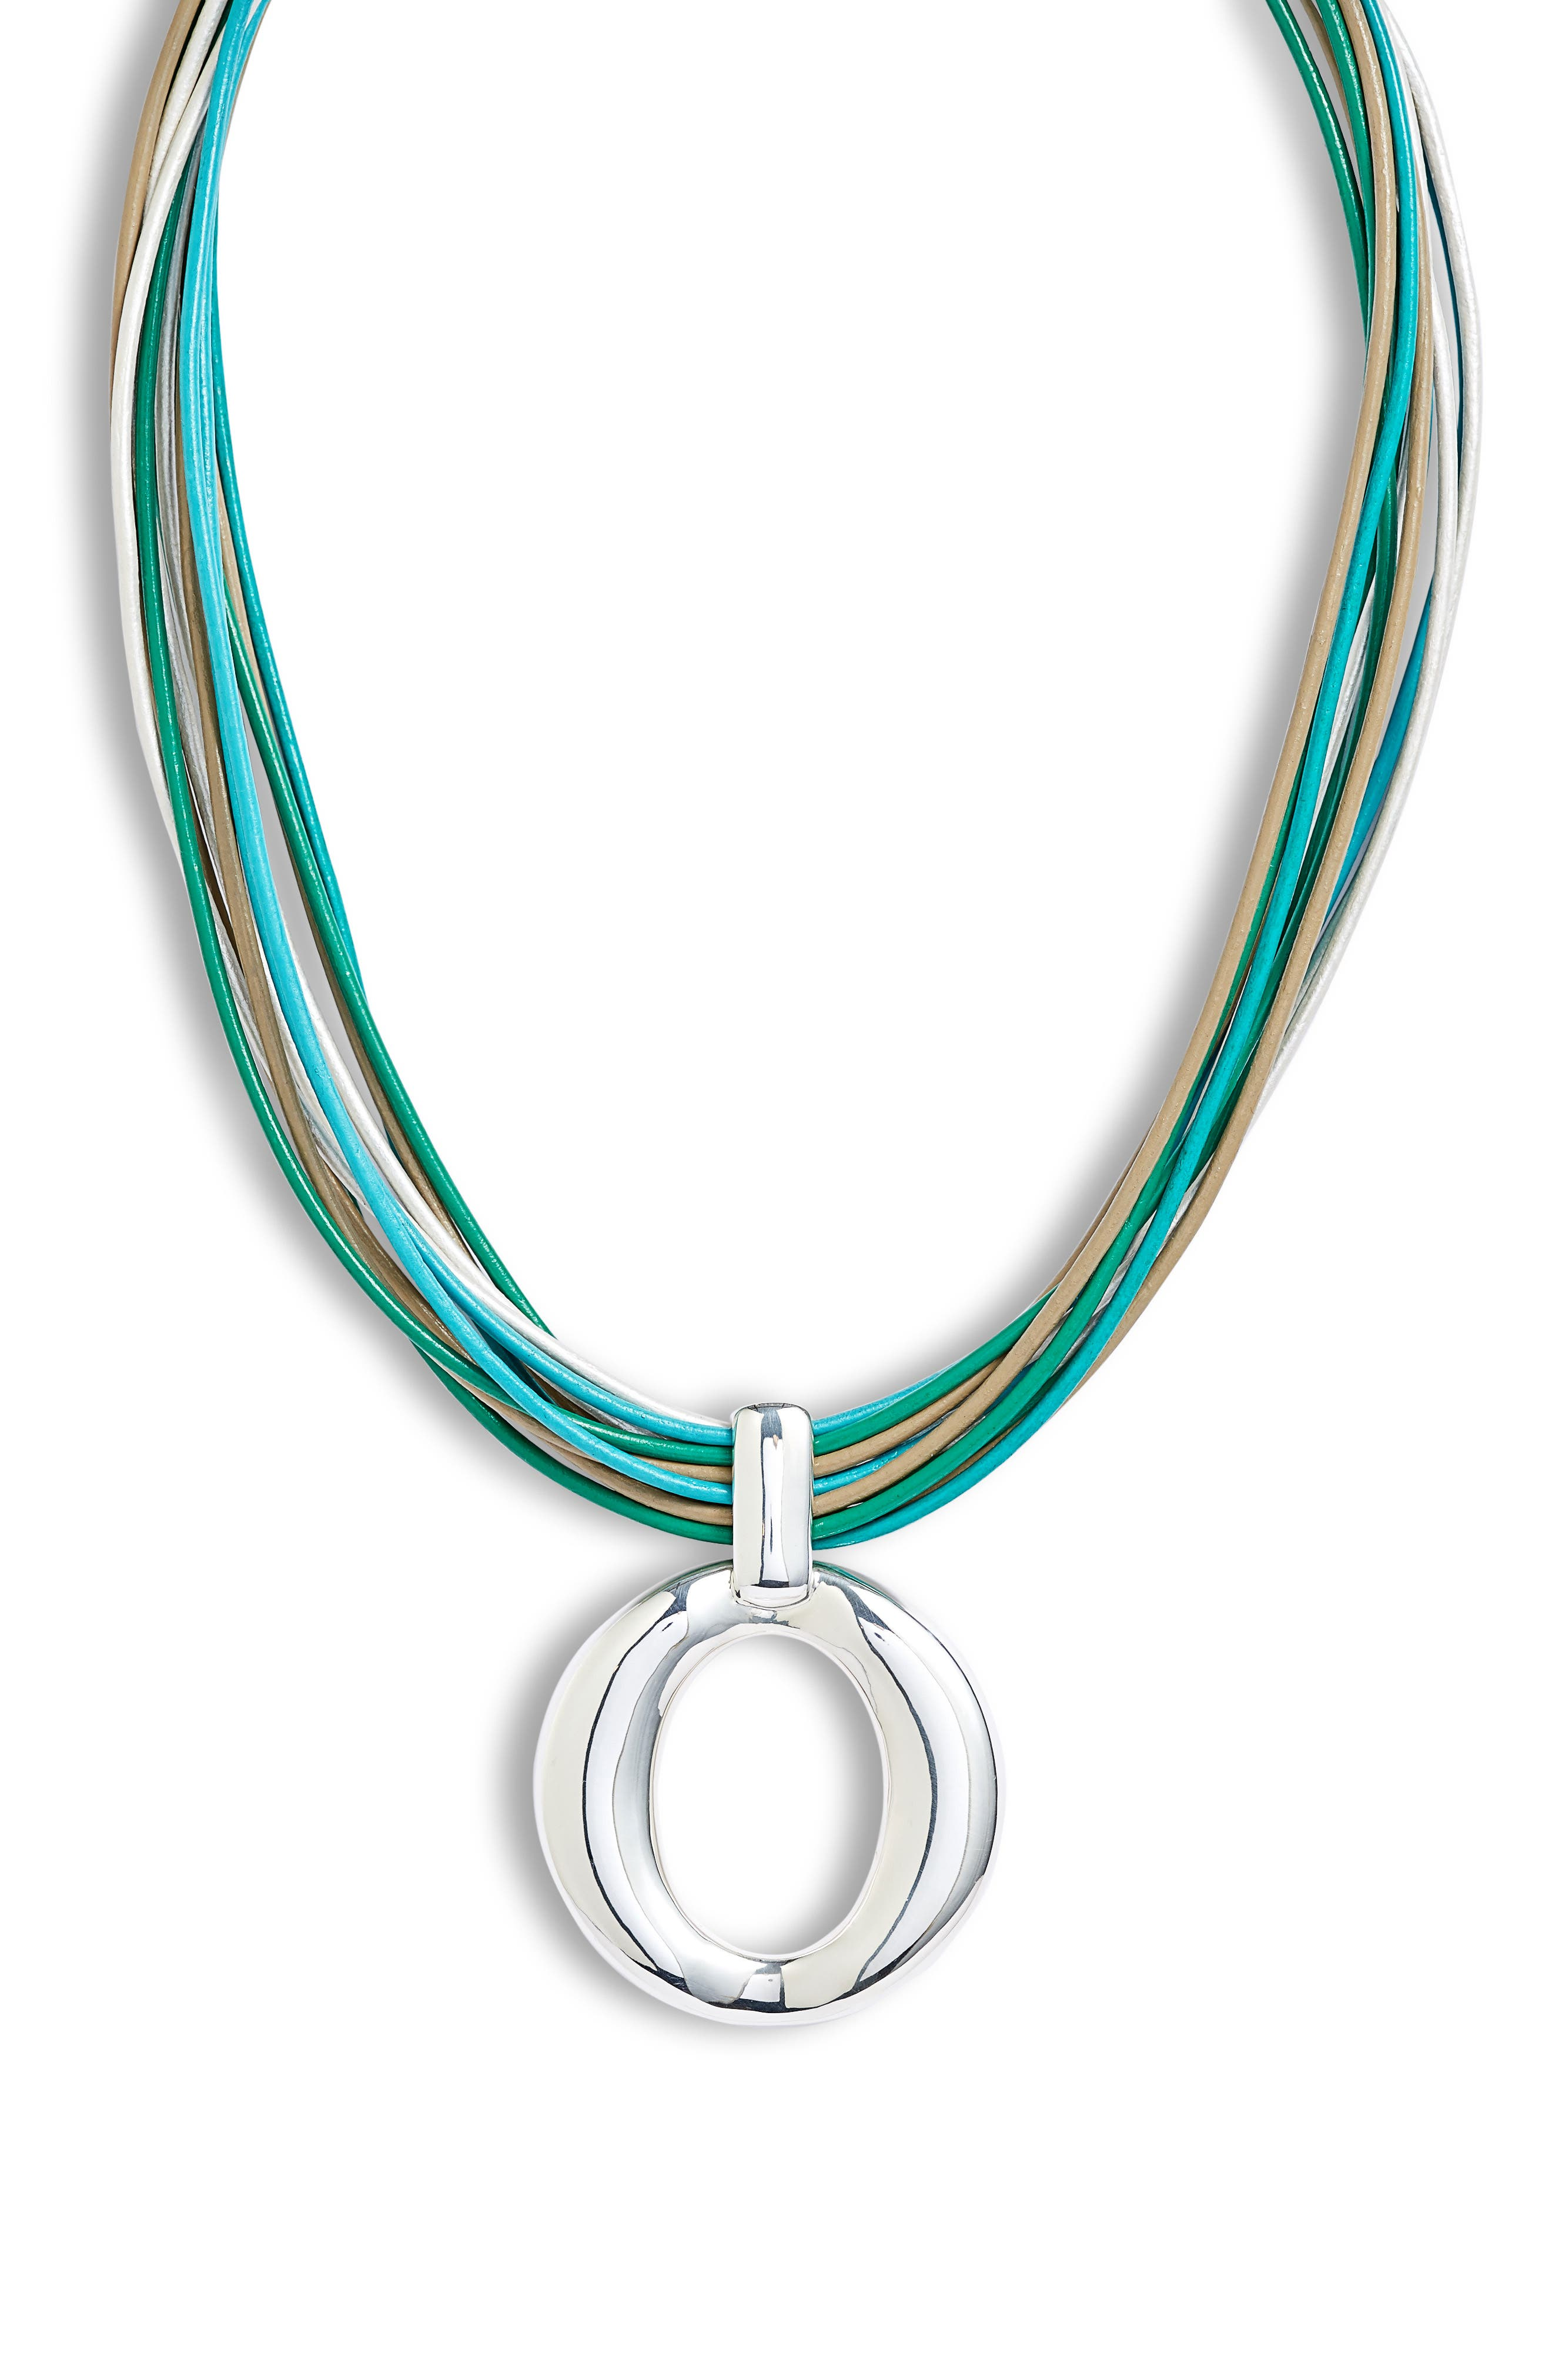 Jewelry Necklaces Women S 201 500 To Buy Online